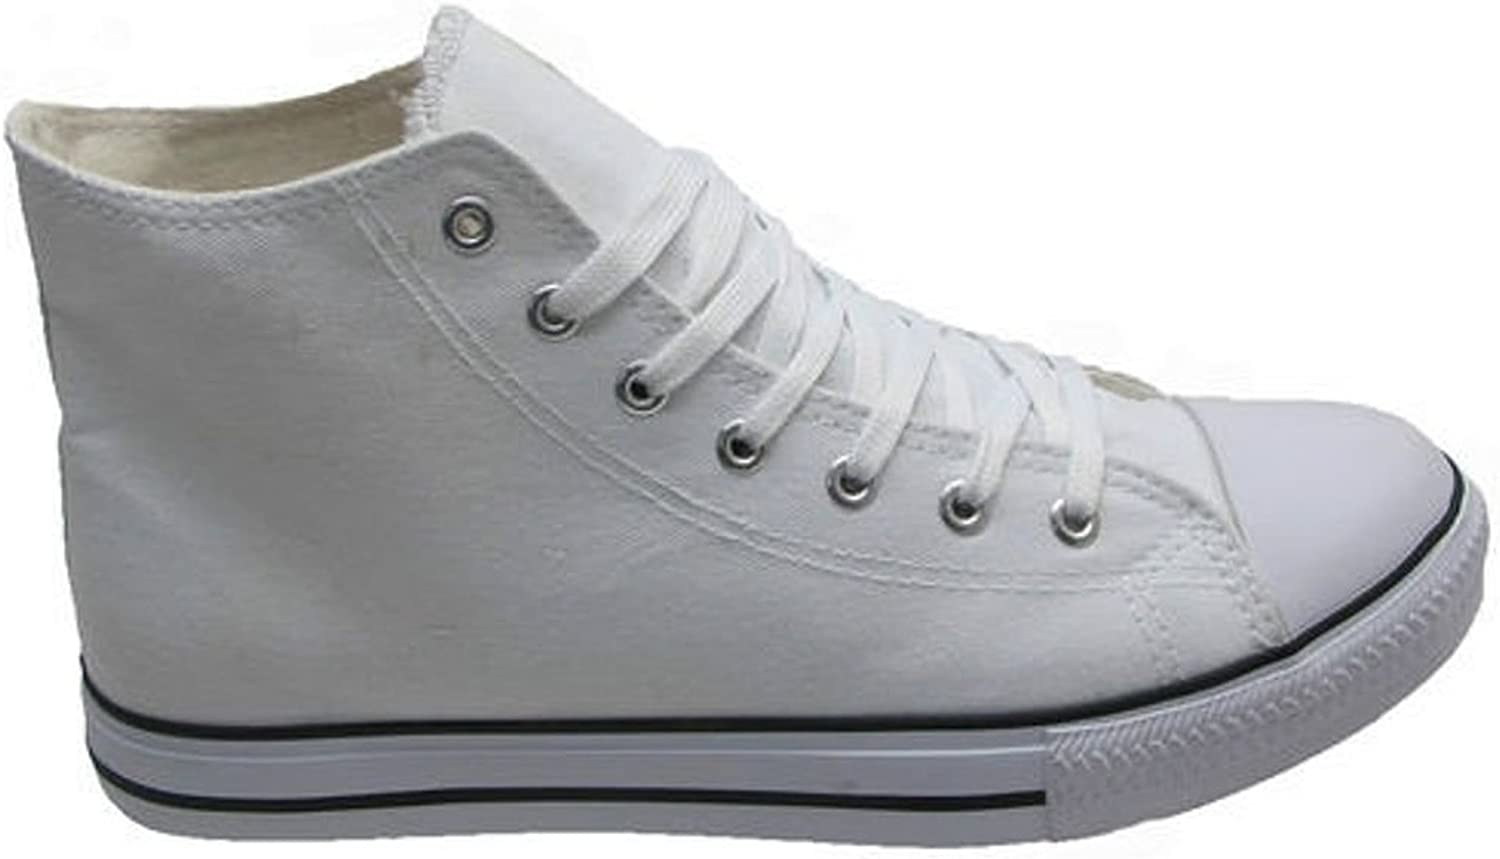 Girls Boys Grey Canvas Lace Up High Top Trainers Baseball Pumps Boots UK 1-5